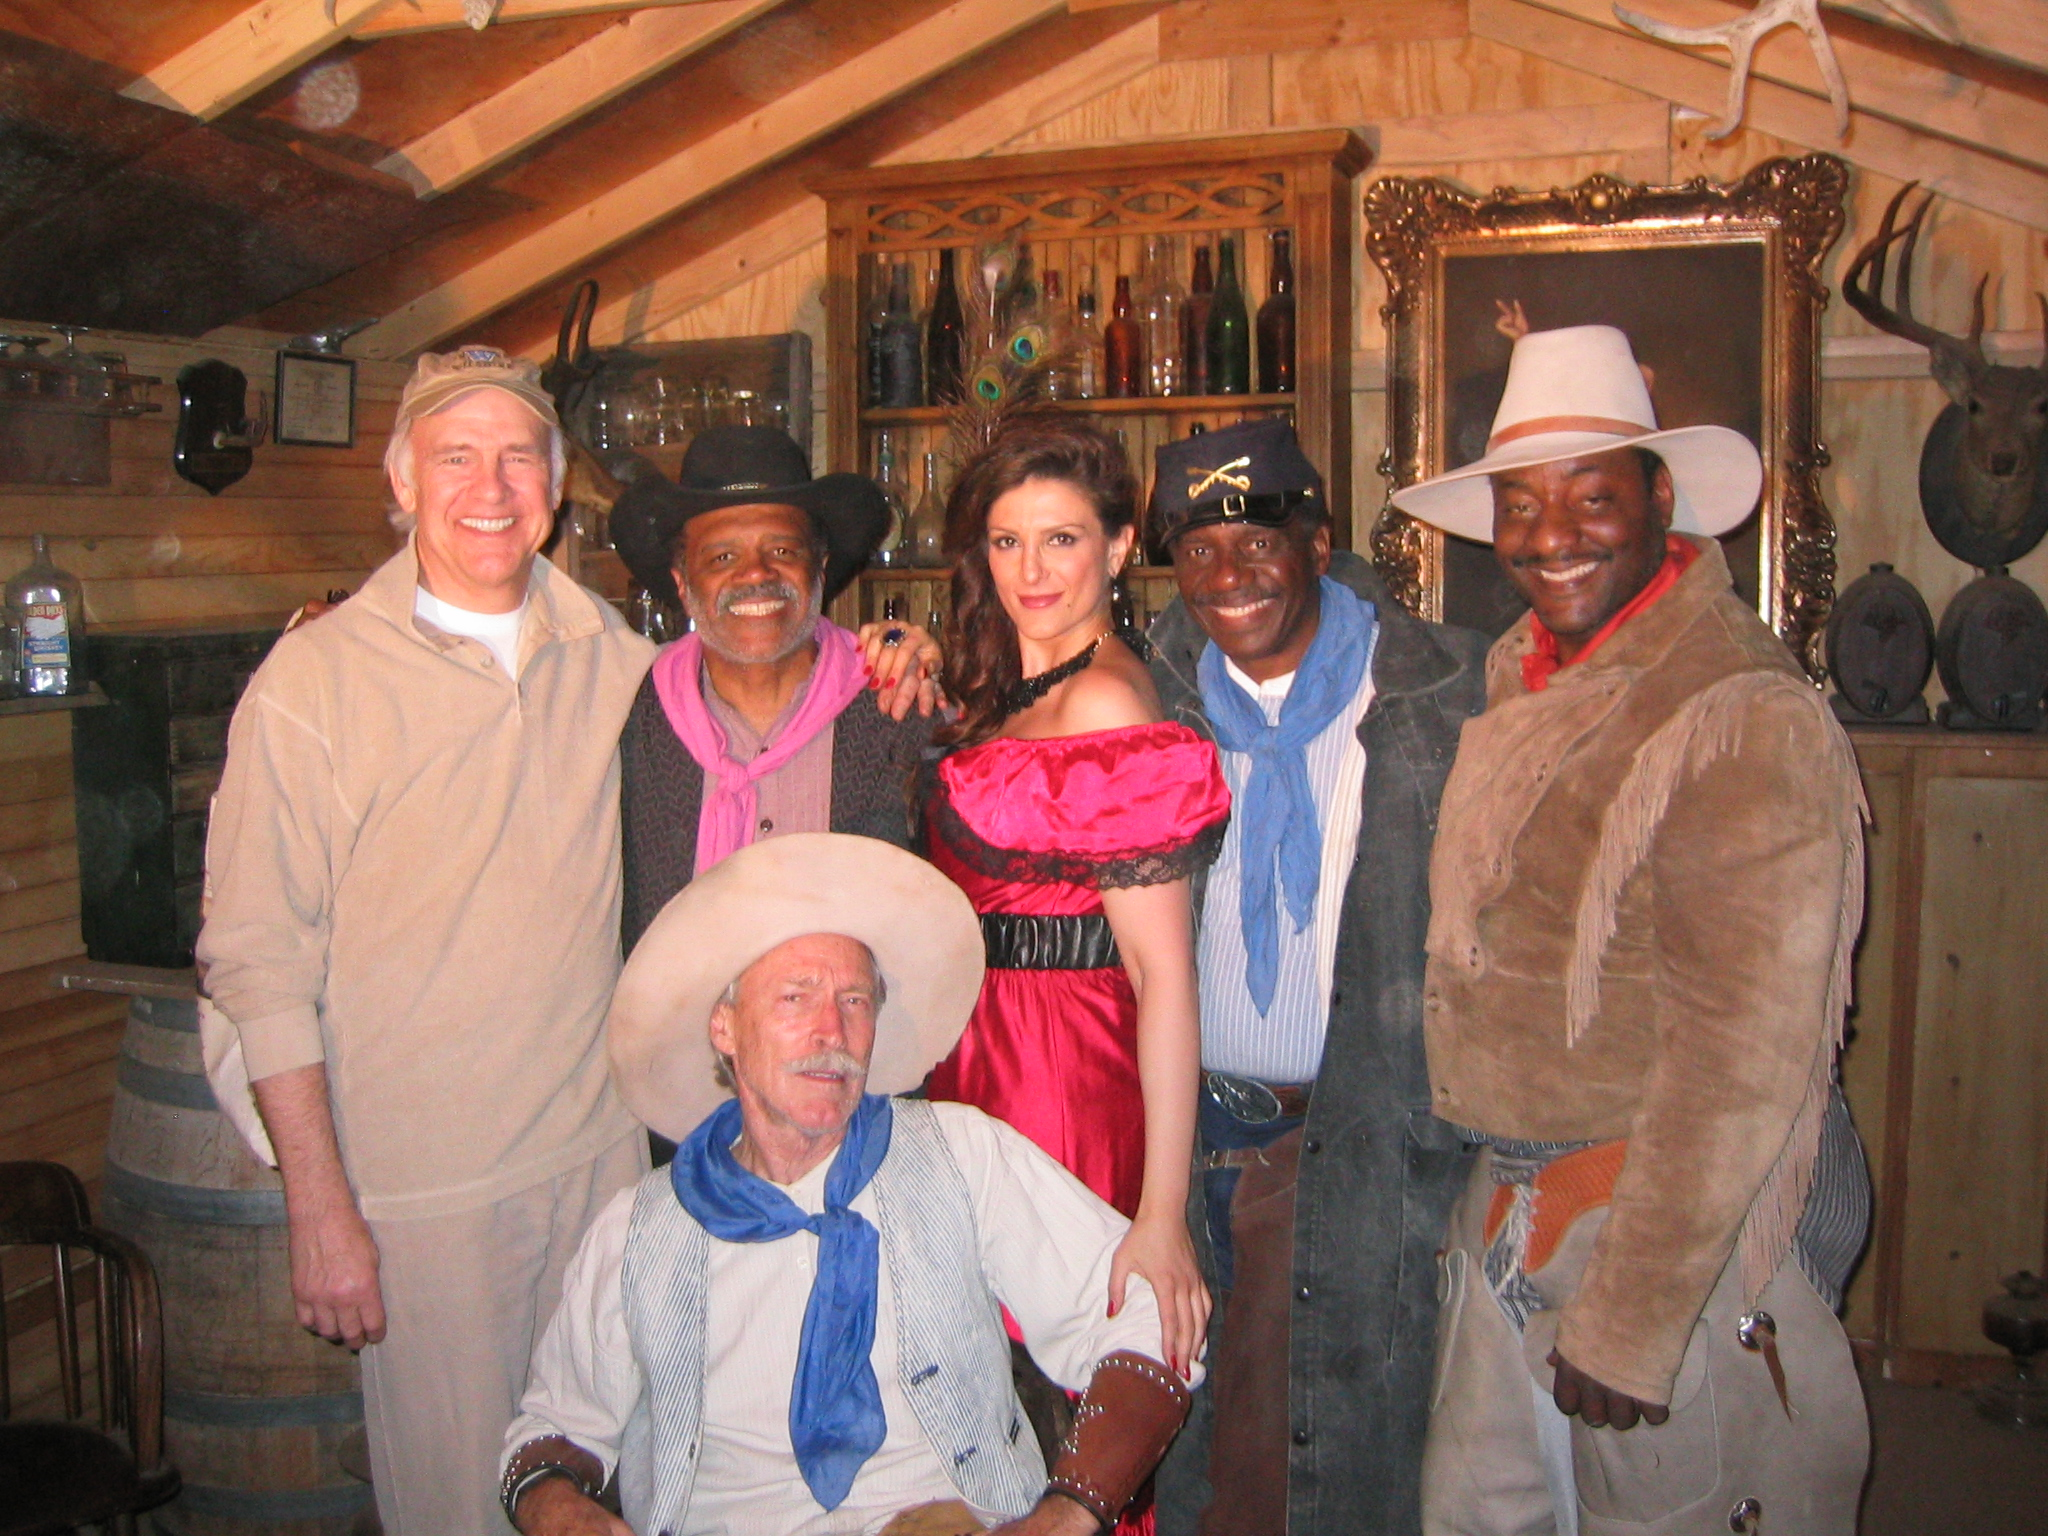 Patrick Gorman, Christine Kludjian, Ted Lange, Harrison Page, and Robert Pine in Players at the Poker Palace (2008)